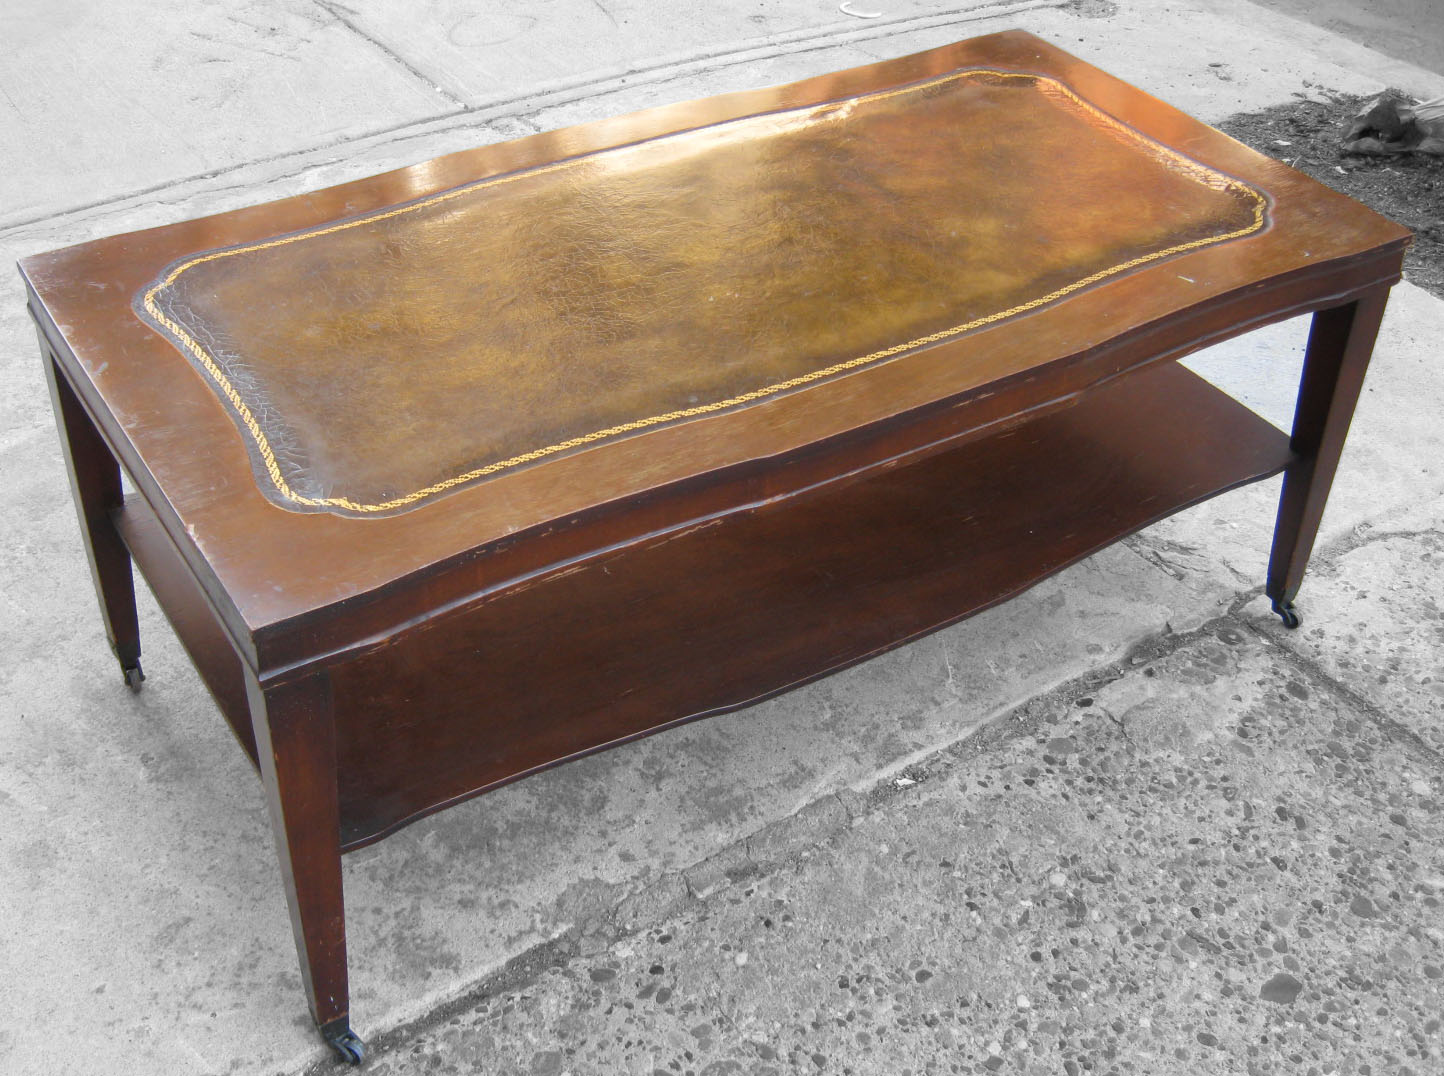 Uhuru Furniture & Collectibles: Leather Top Coffee Table SOLD